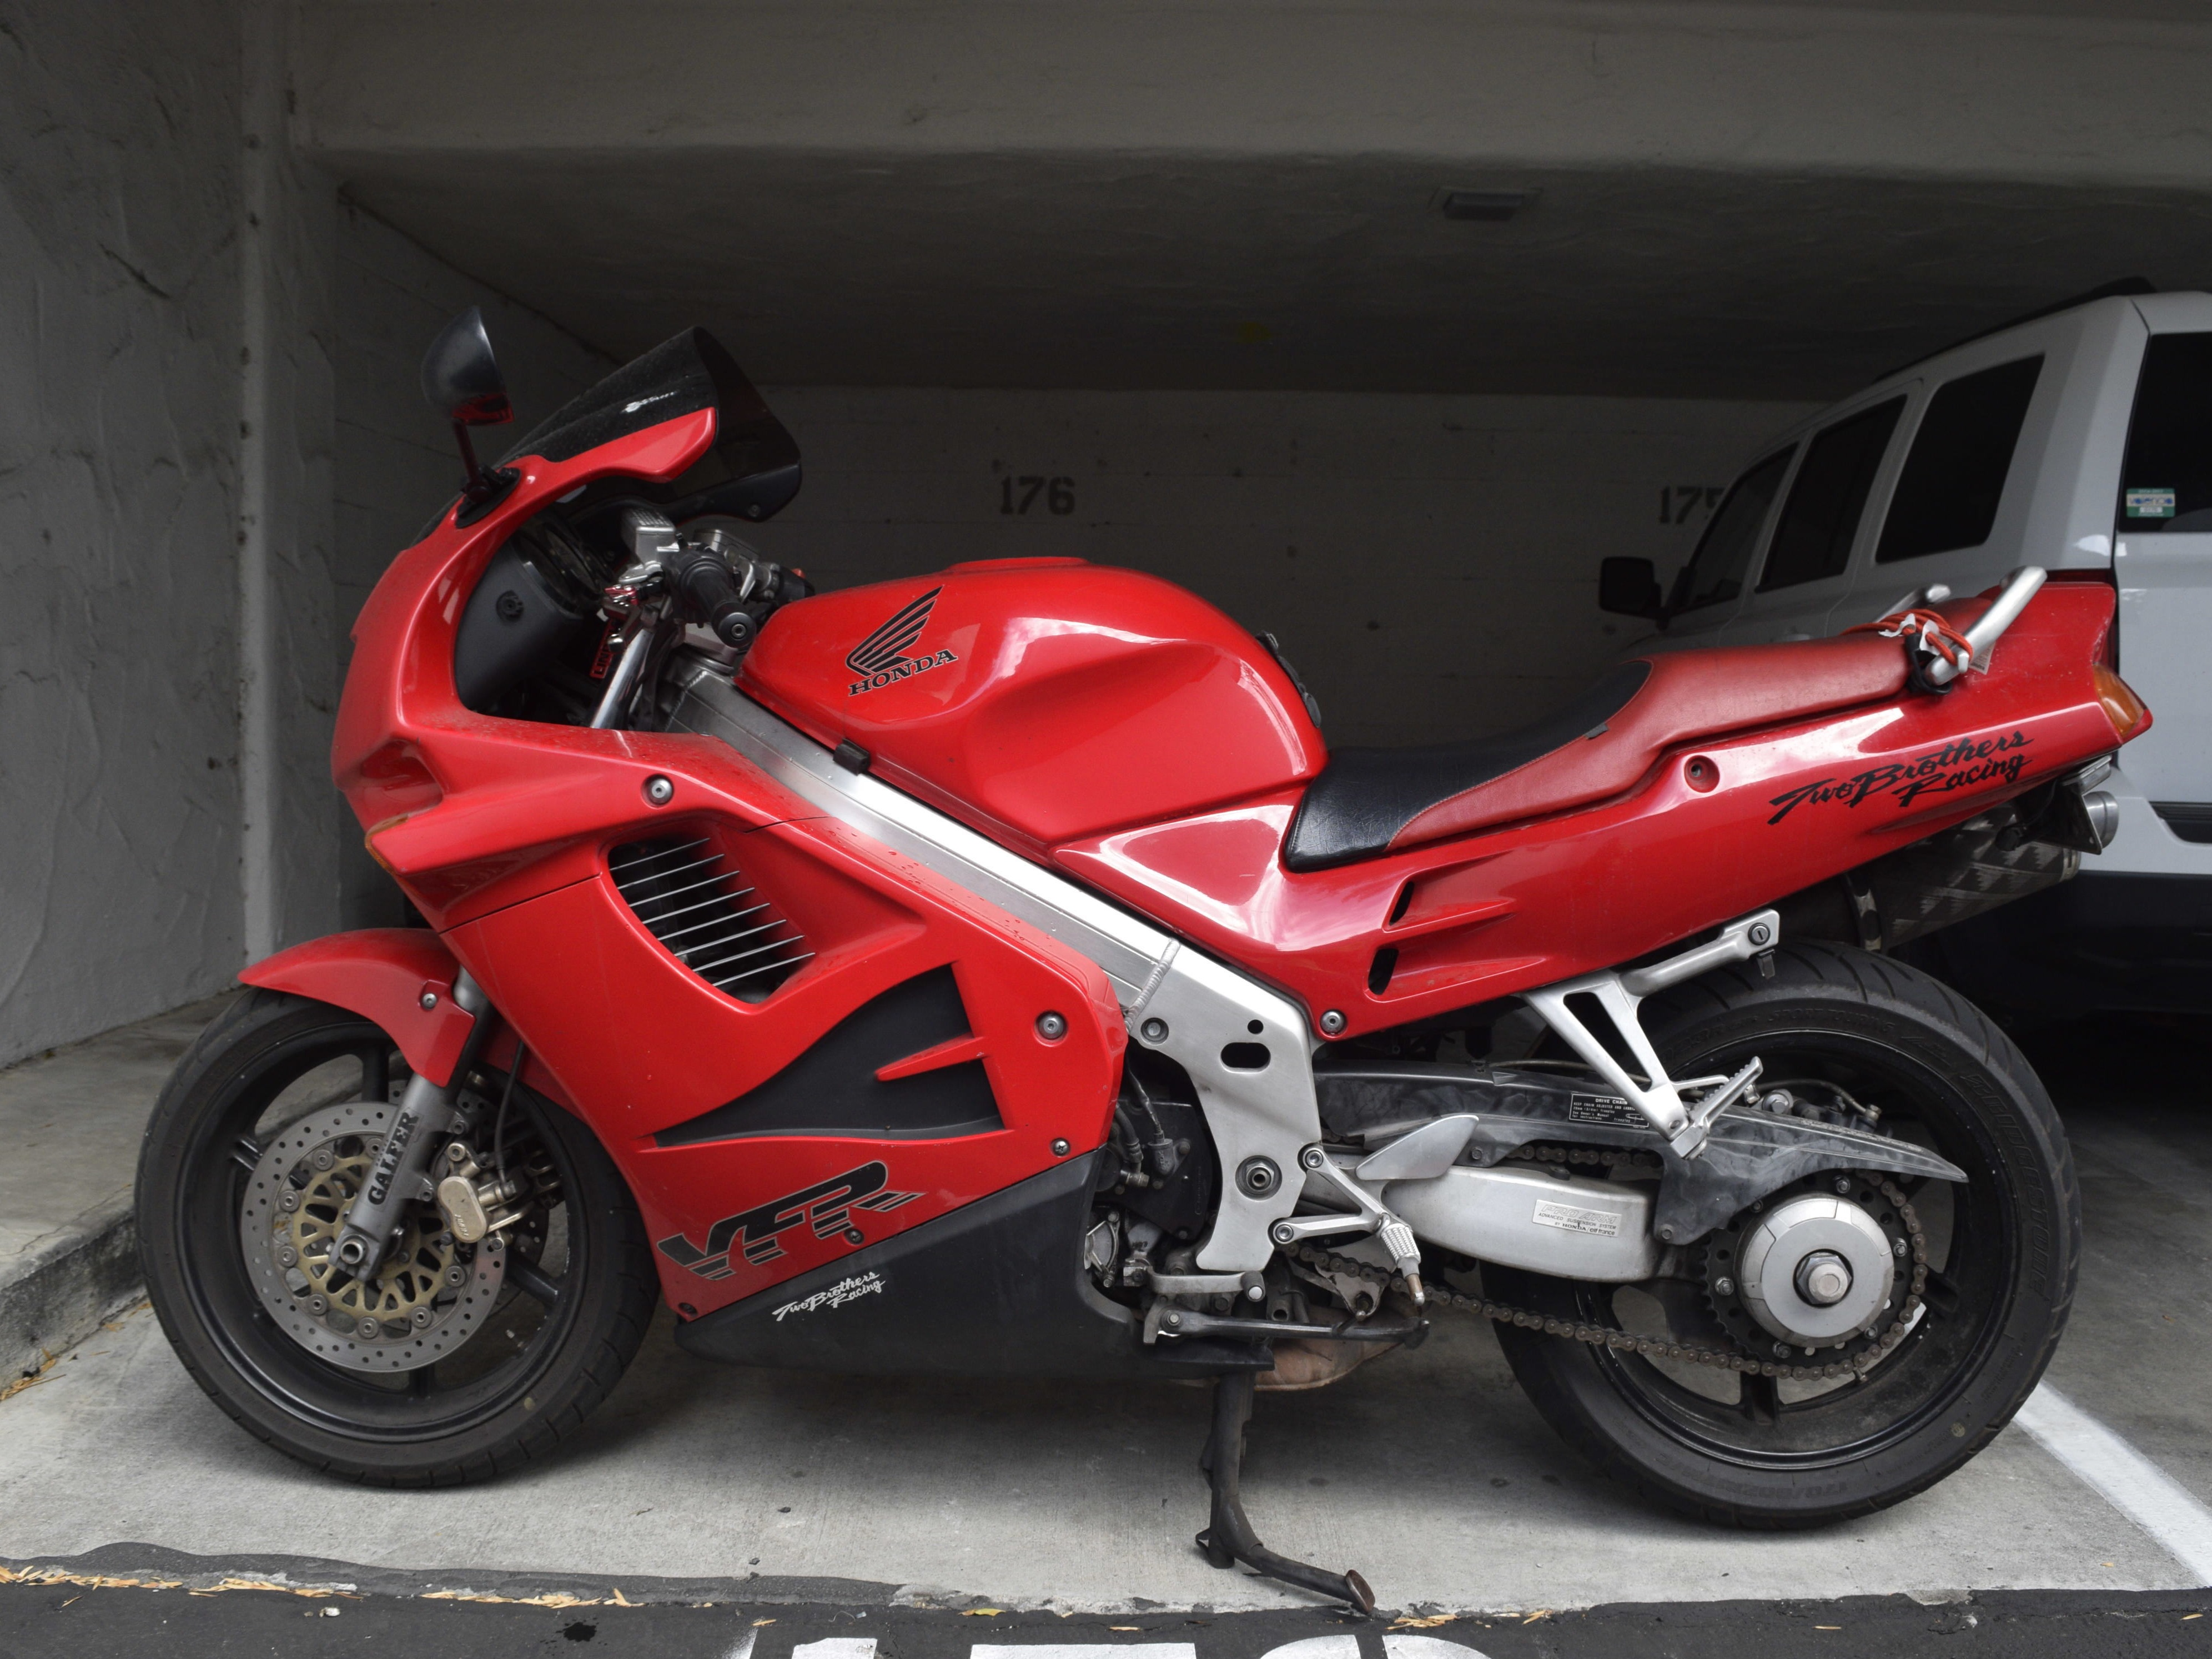 How To Replace The Front Brake Pads On A 1994 Honda Vfr